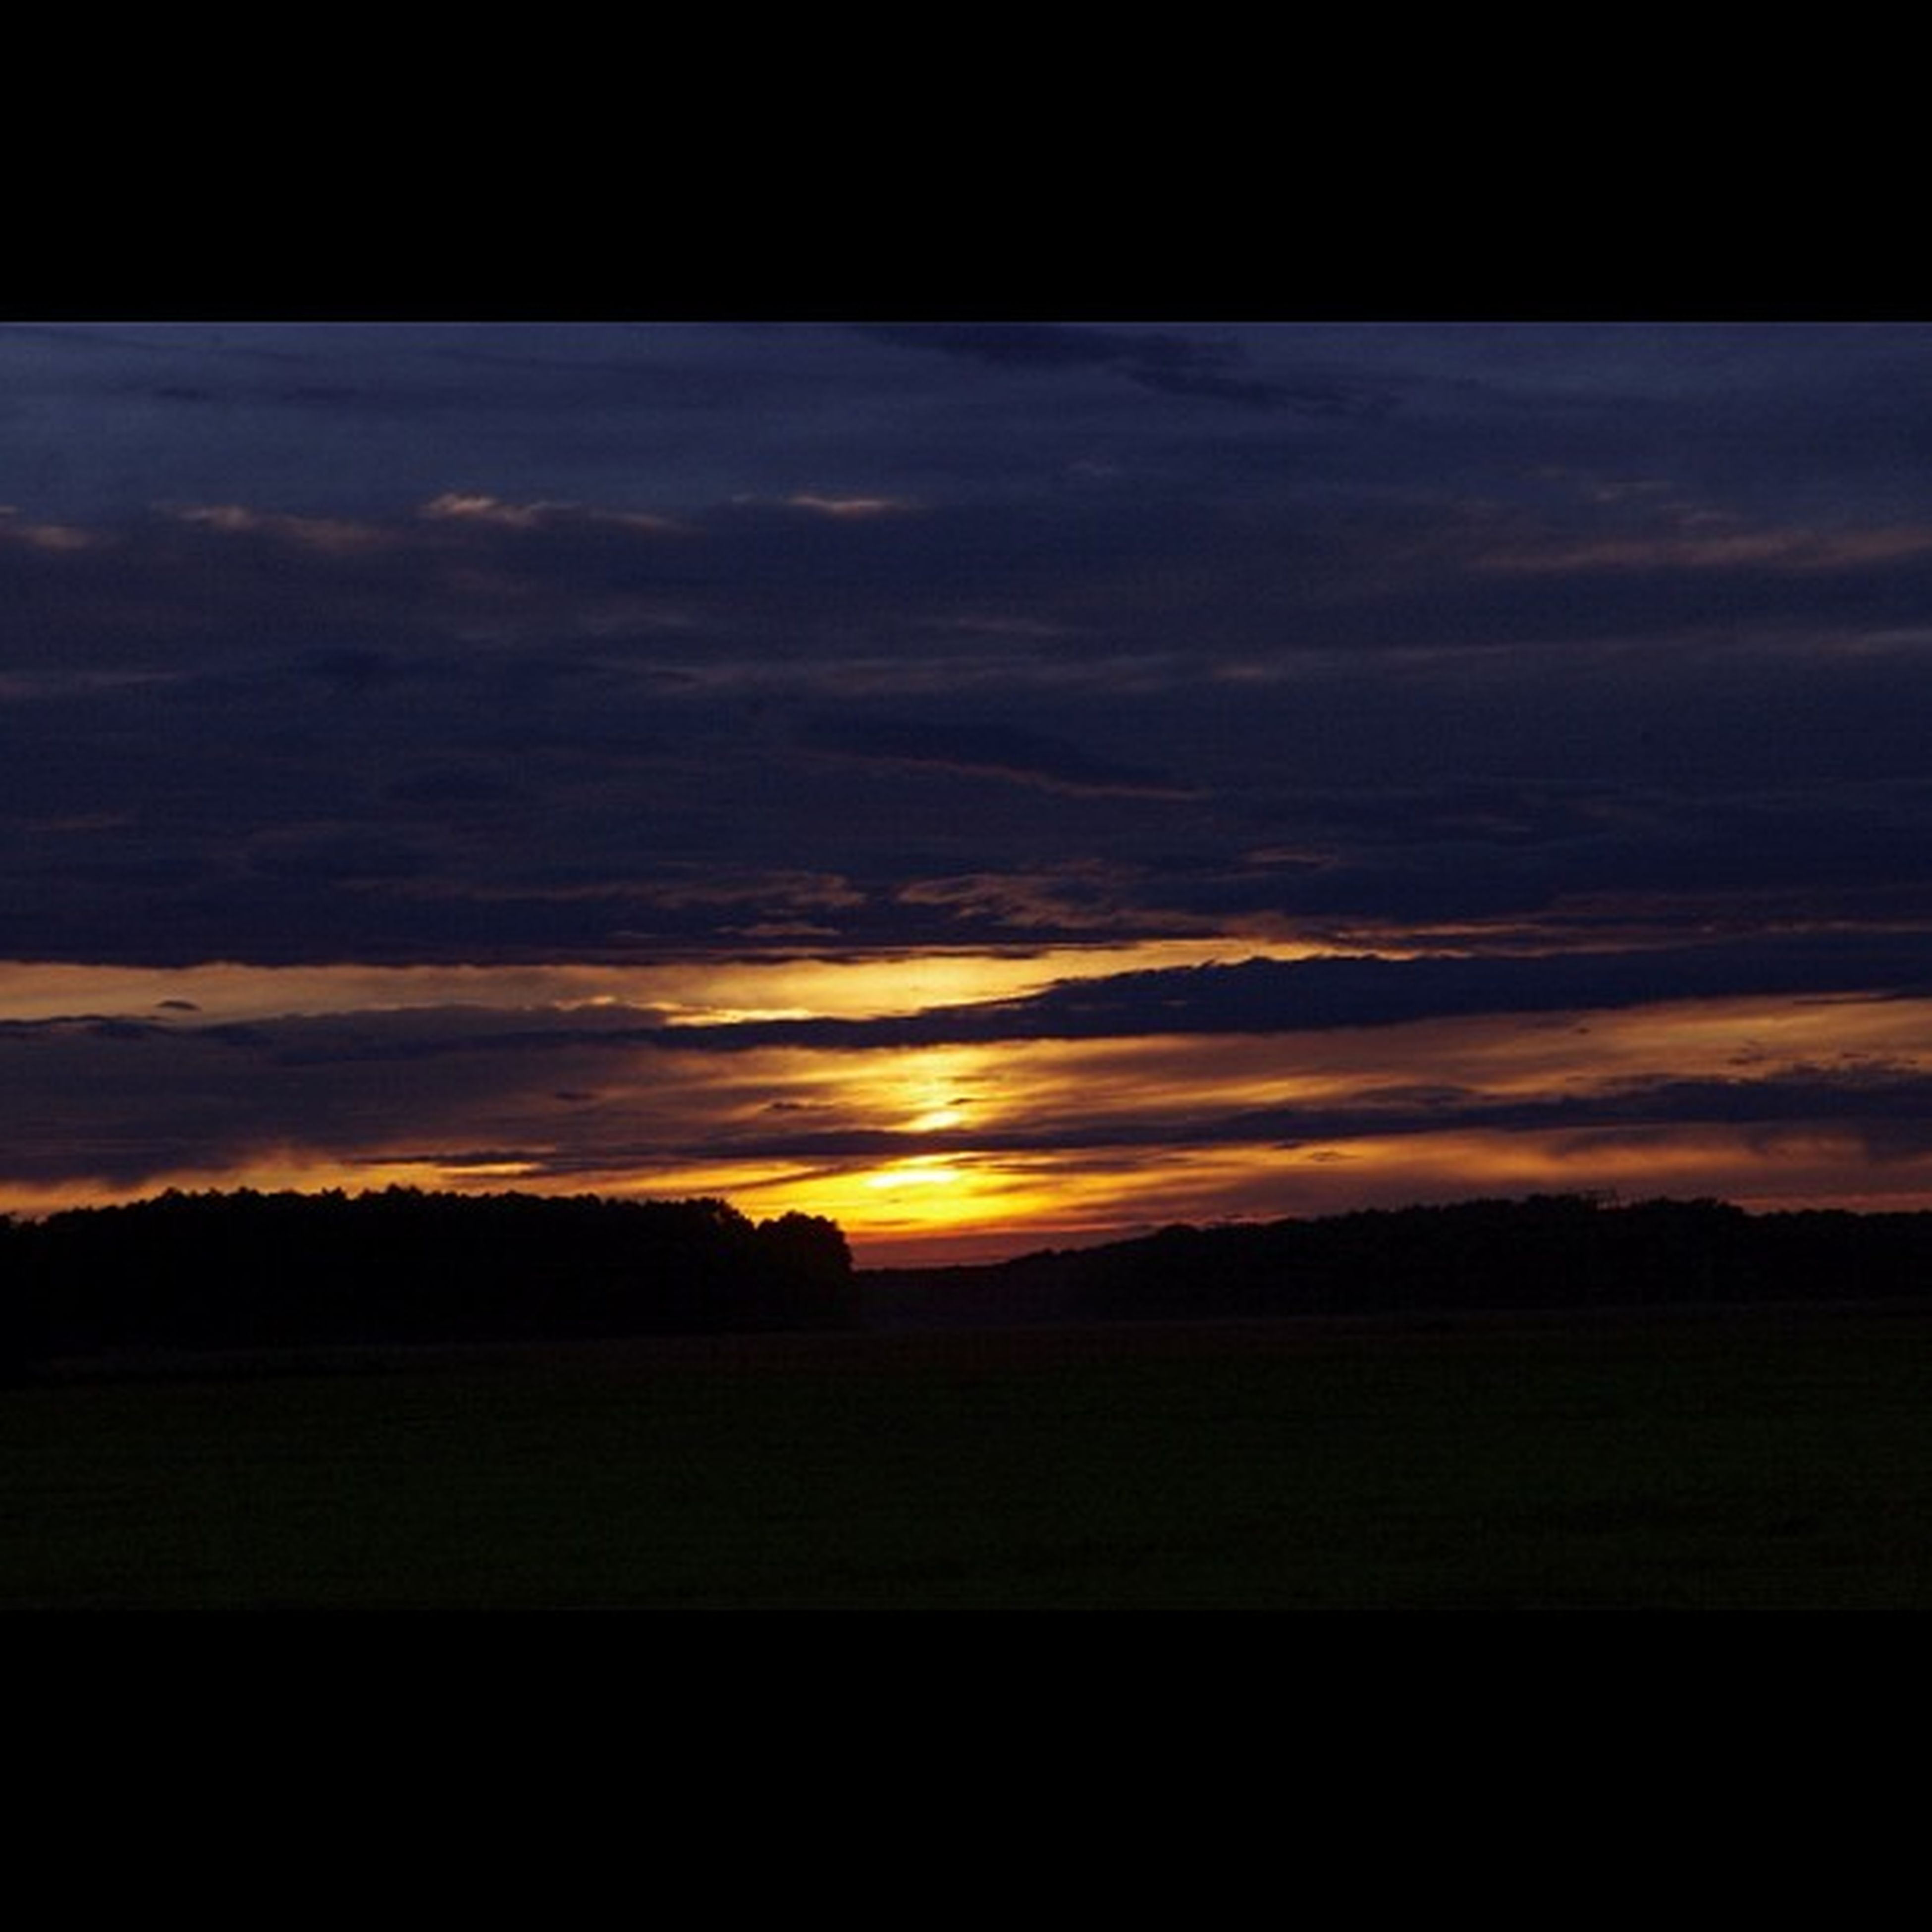 sunset, scenics, tranquil scene, sky, tranquility, beauty in nature, silhouette, landscape, cloud - sky, orange color, nature, idyllic, cloud, dramatic sky, cloudy, dark, moody sky, horizon over land, outdoors, non-urban scene